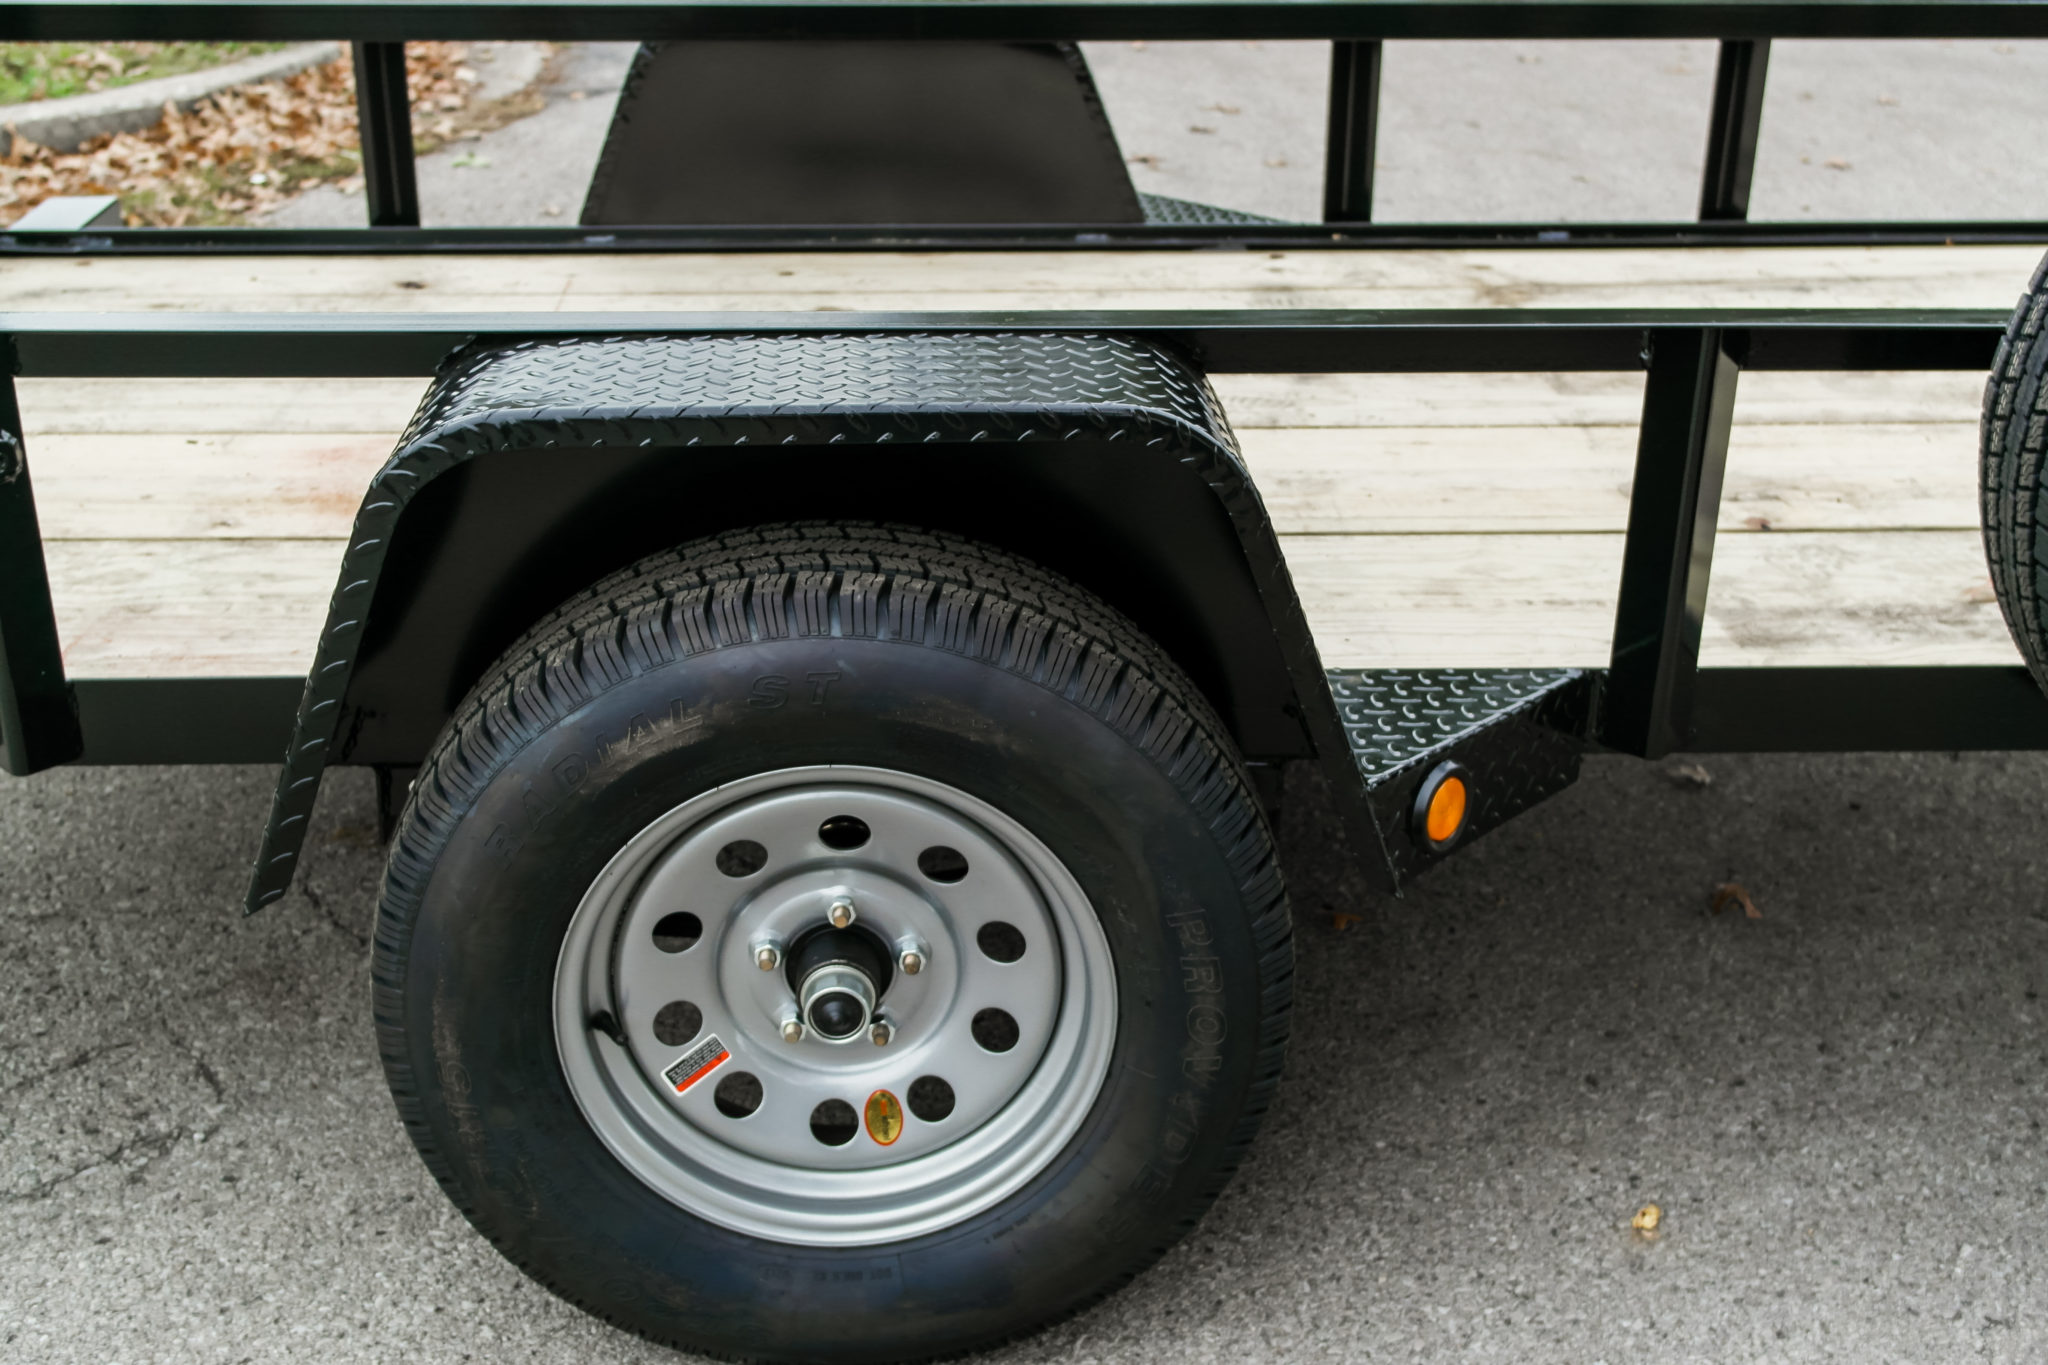 Heavy Duty Professional Grade 5x10 Utility Trailers Gatormade Trailer Light Wiring On Lights Uses Landscaping Car Who The Single Axle